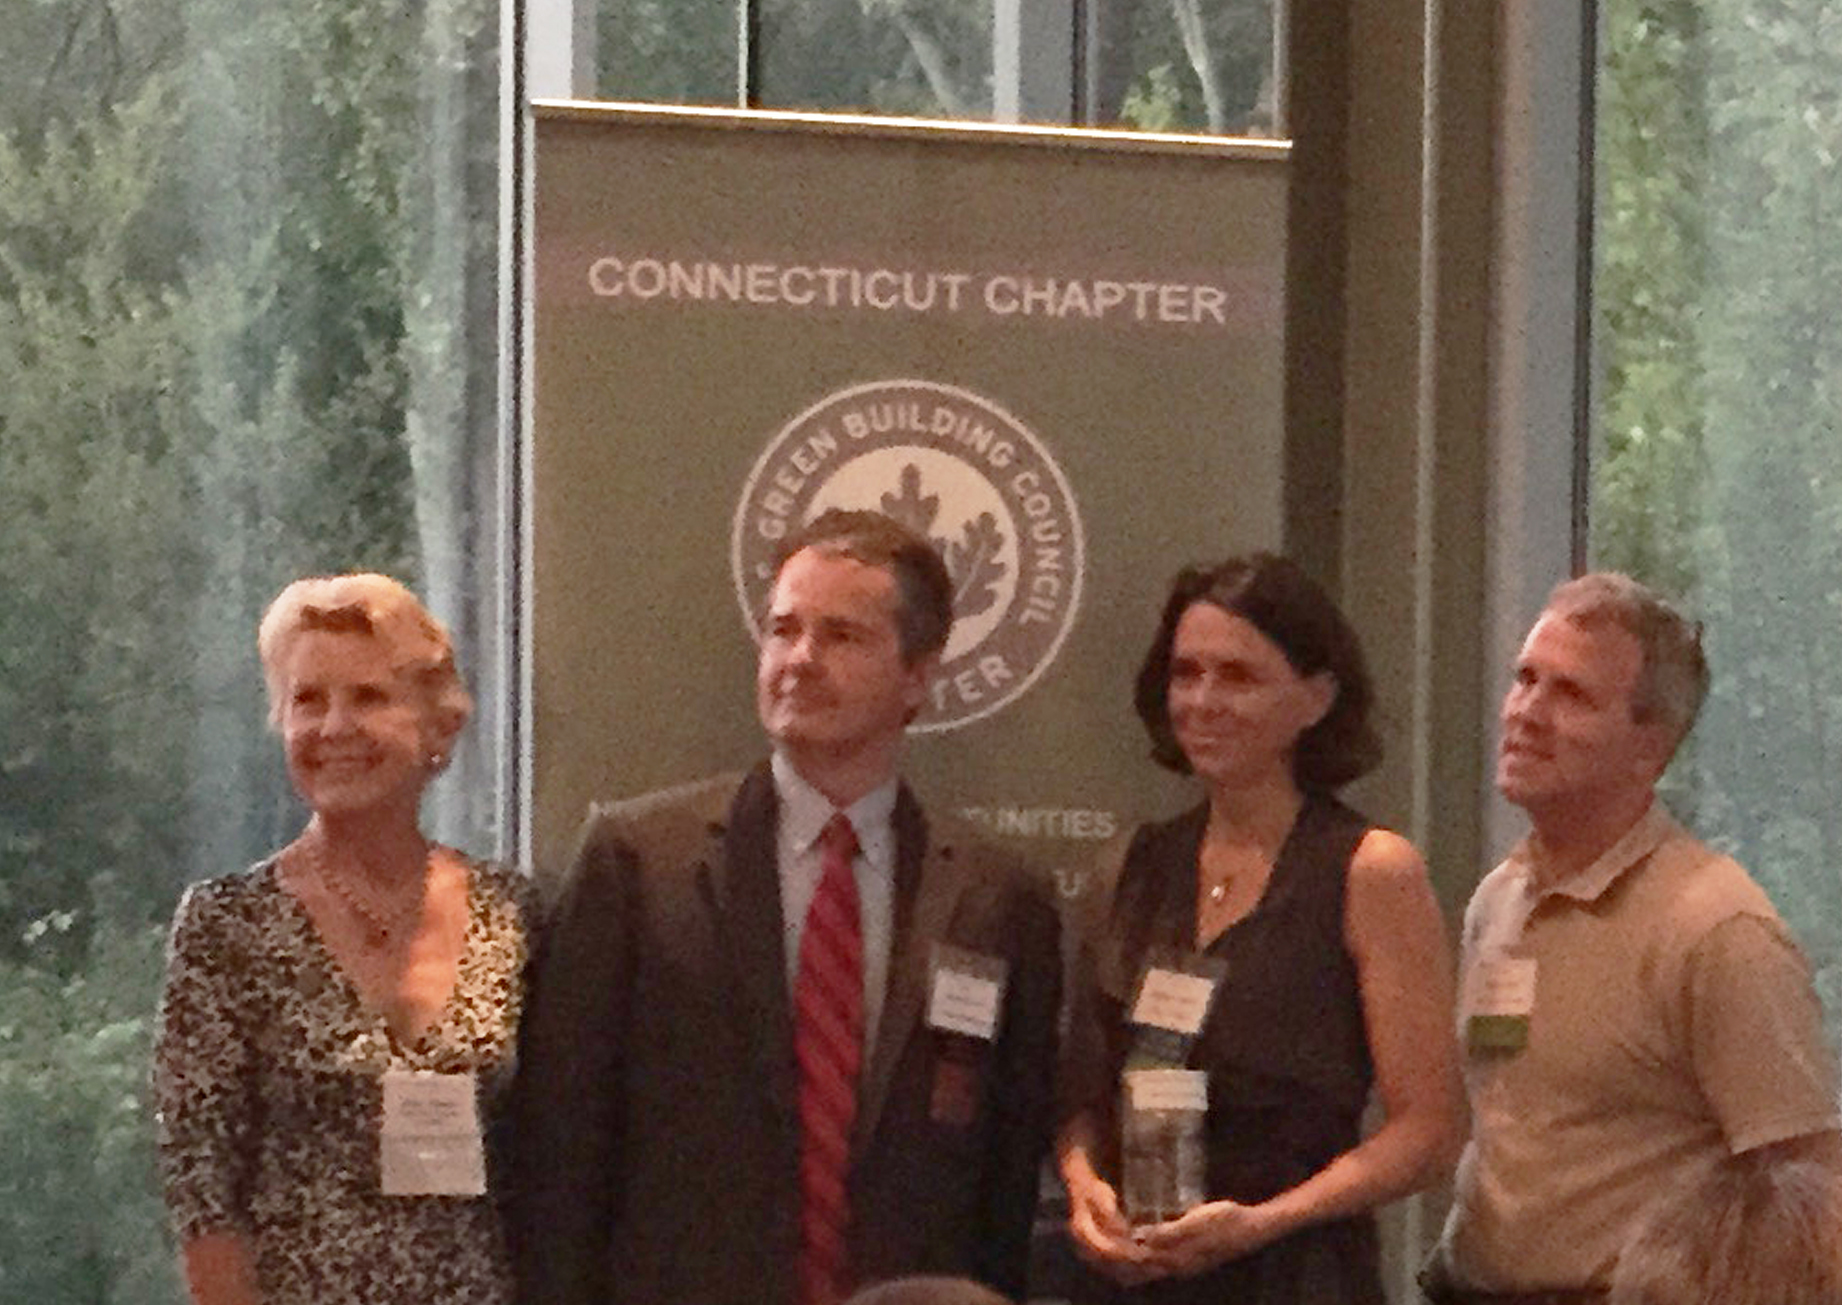 Elizabeth DiSalvo accepting the 2015 CTGBC Green Building Residential award of honor for the Taft School Residence, with Judy Swann~CTGBC, Pat McDonnell~CTGBC, Chris Trolle~BPC Builders.